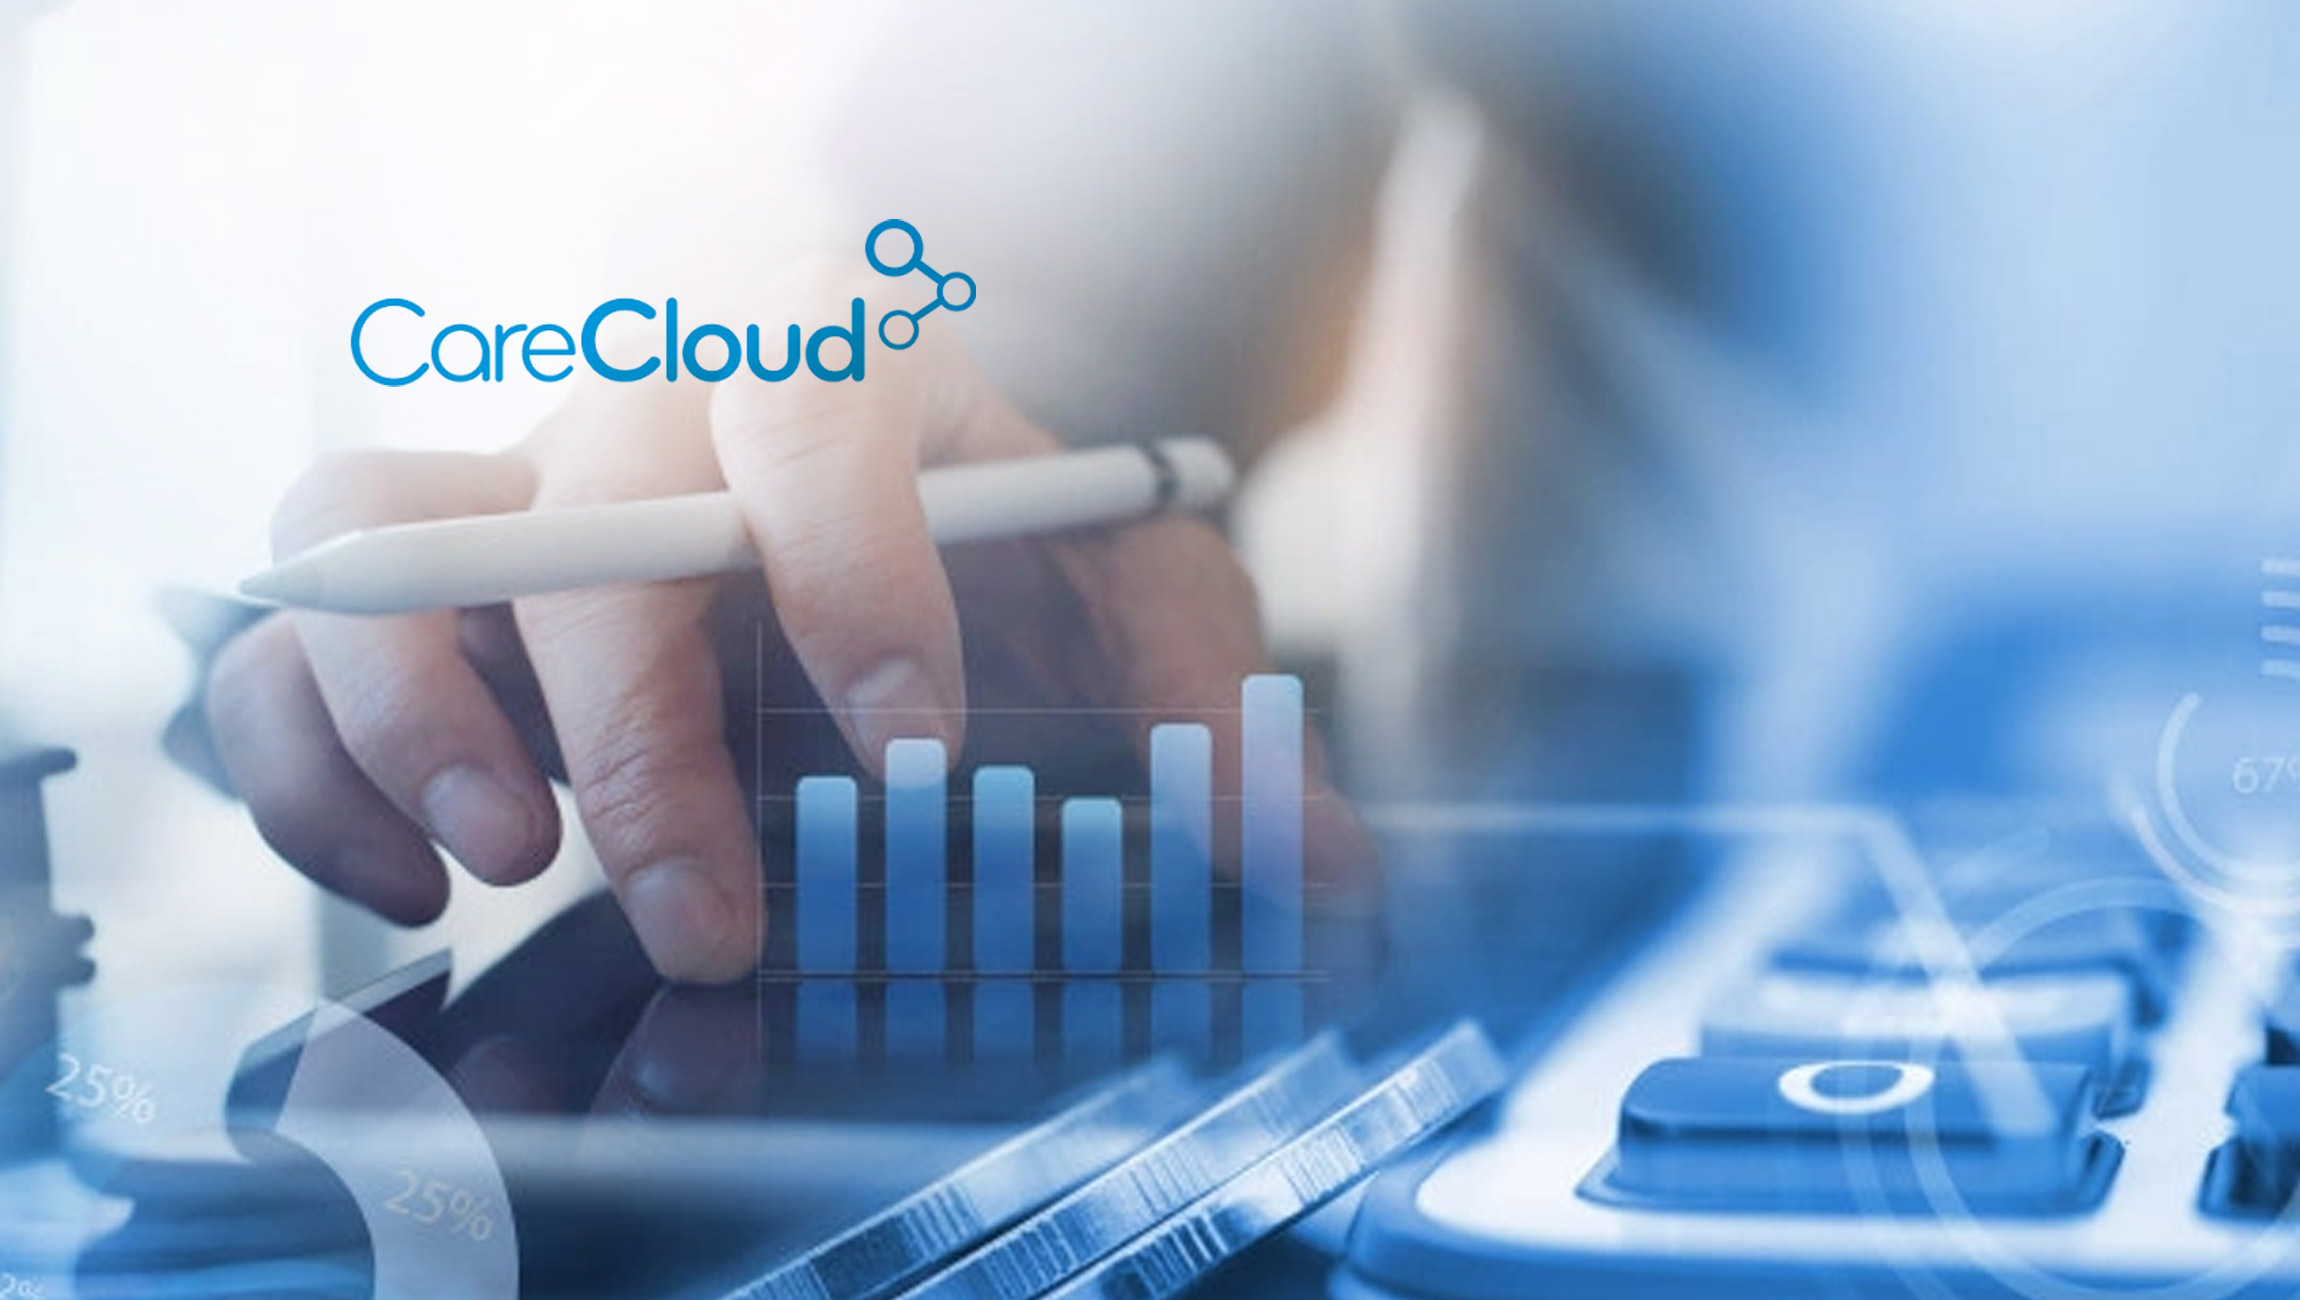 CareCloud's-Business-Intelligence-Platform-Key-in-Assisting-Providers-Identify-Revenue-Generating-Opportunities